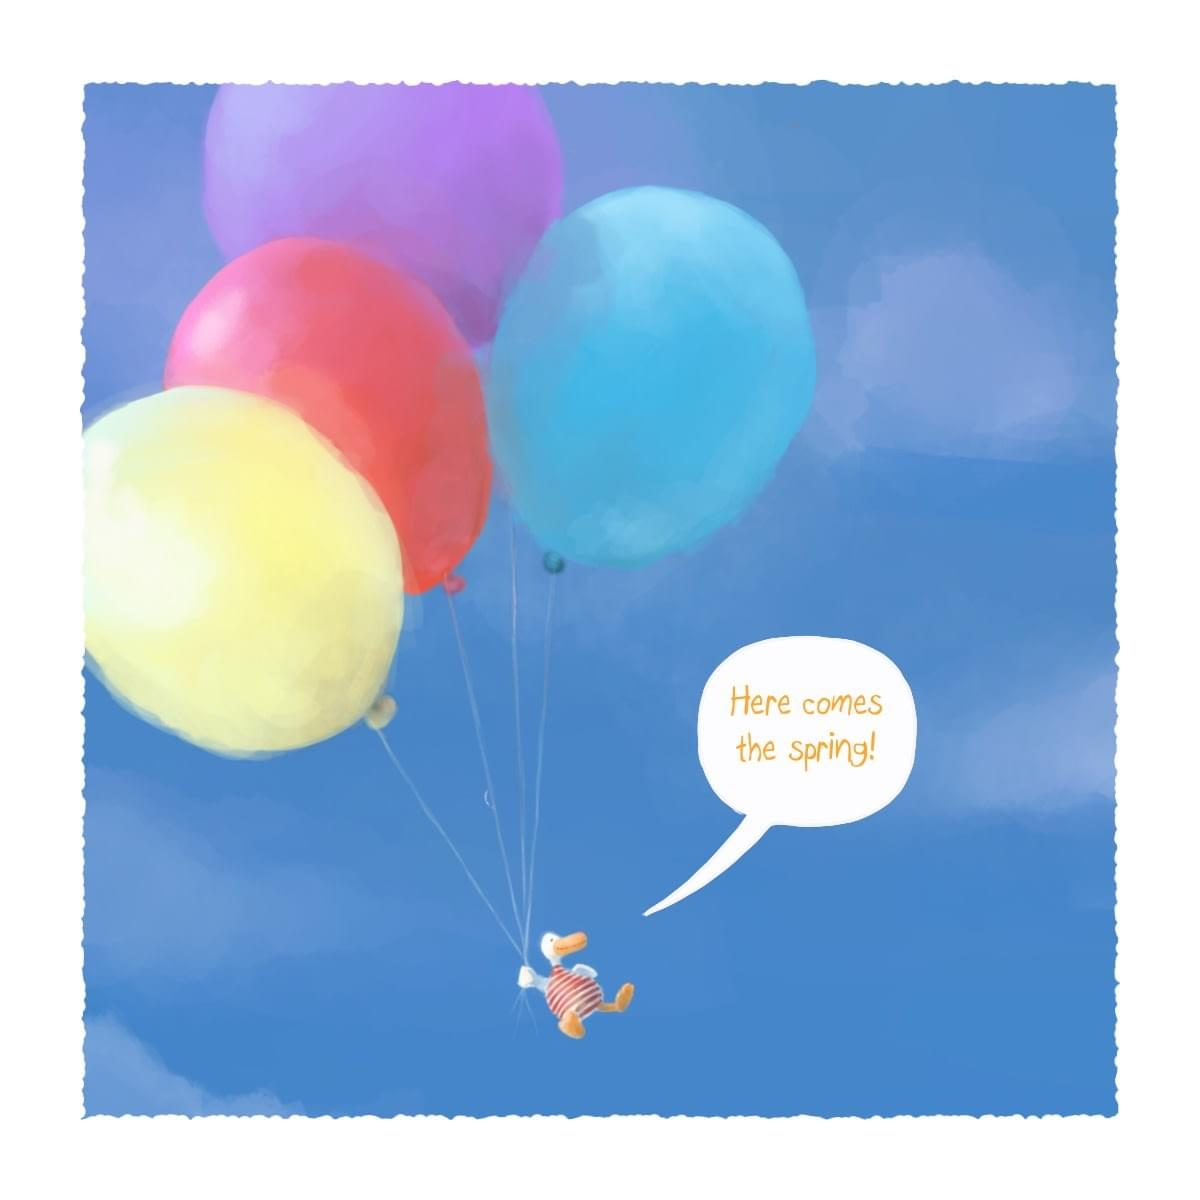 Springtime illustration, baloons, blue skies and happiness.